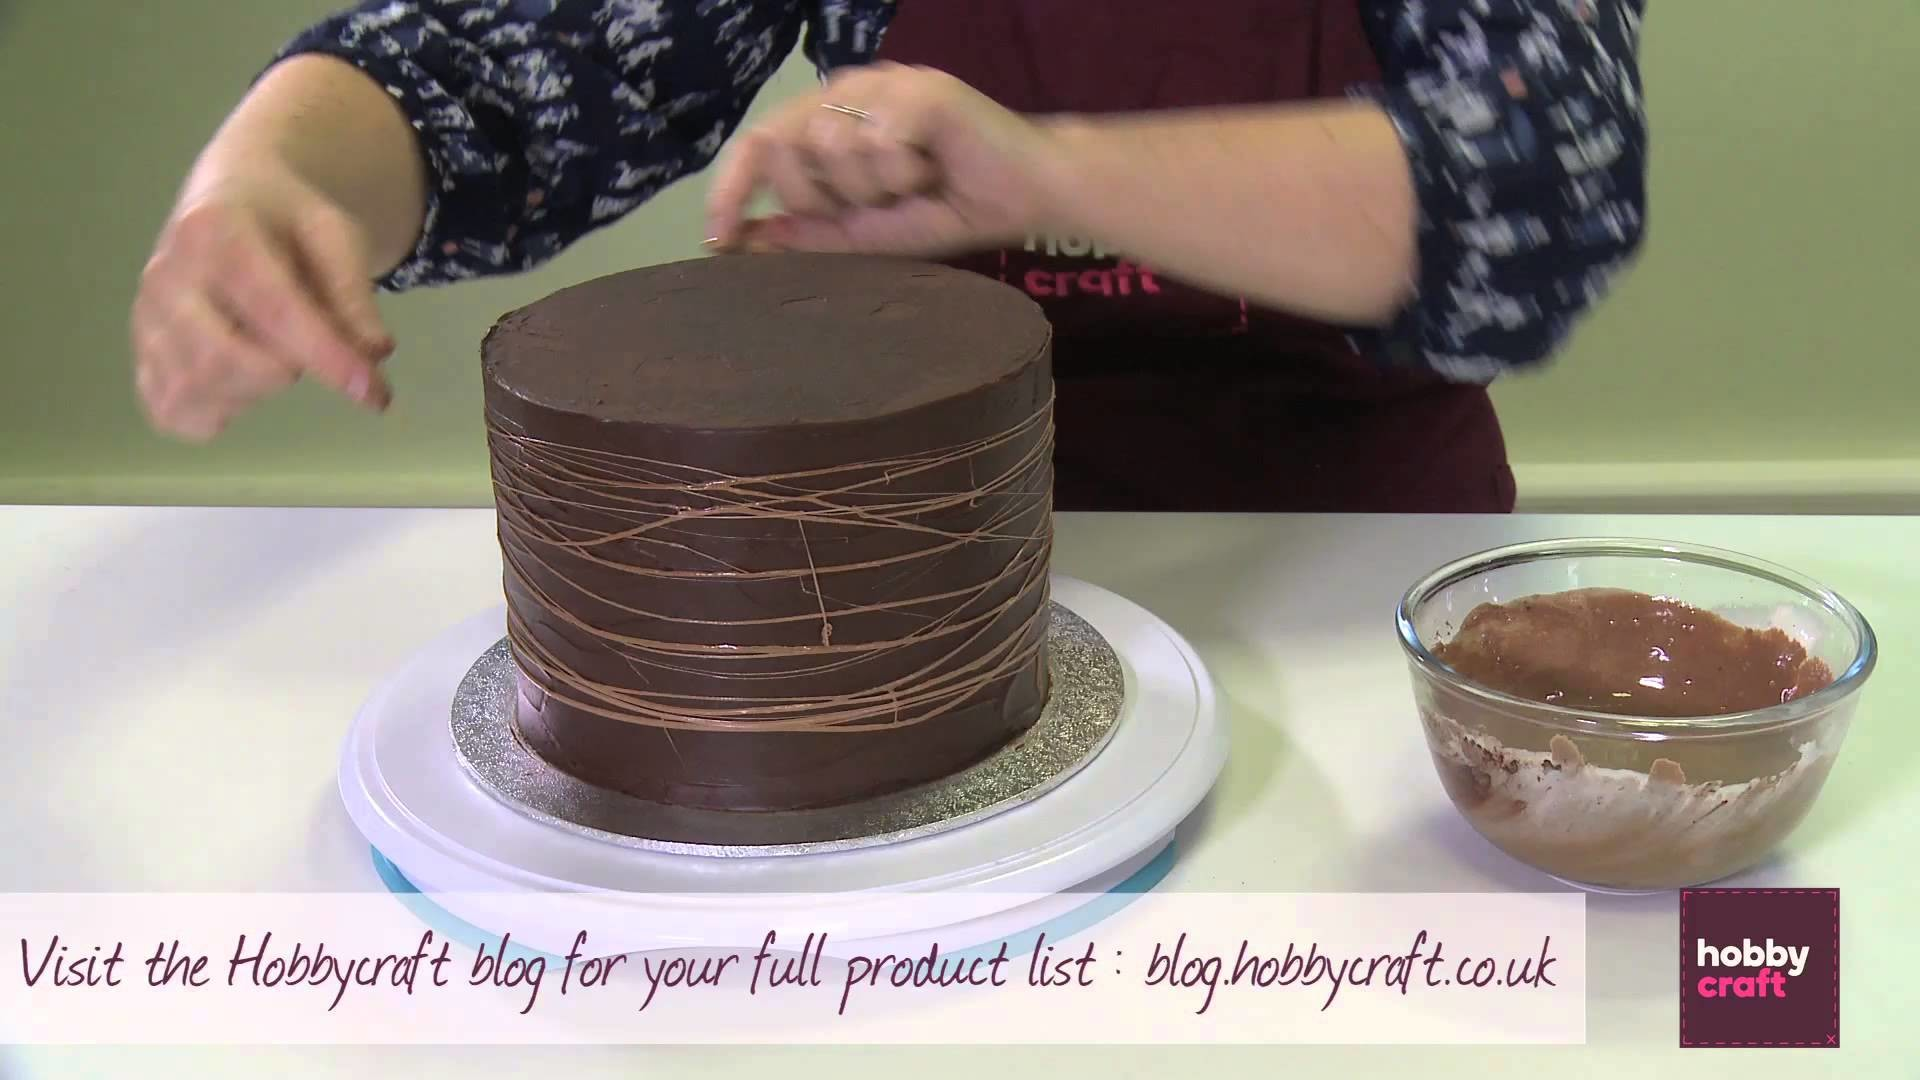 How to Make a Chocolate Easter Cake | Hobbycraft